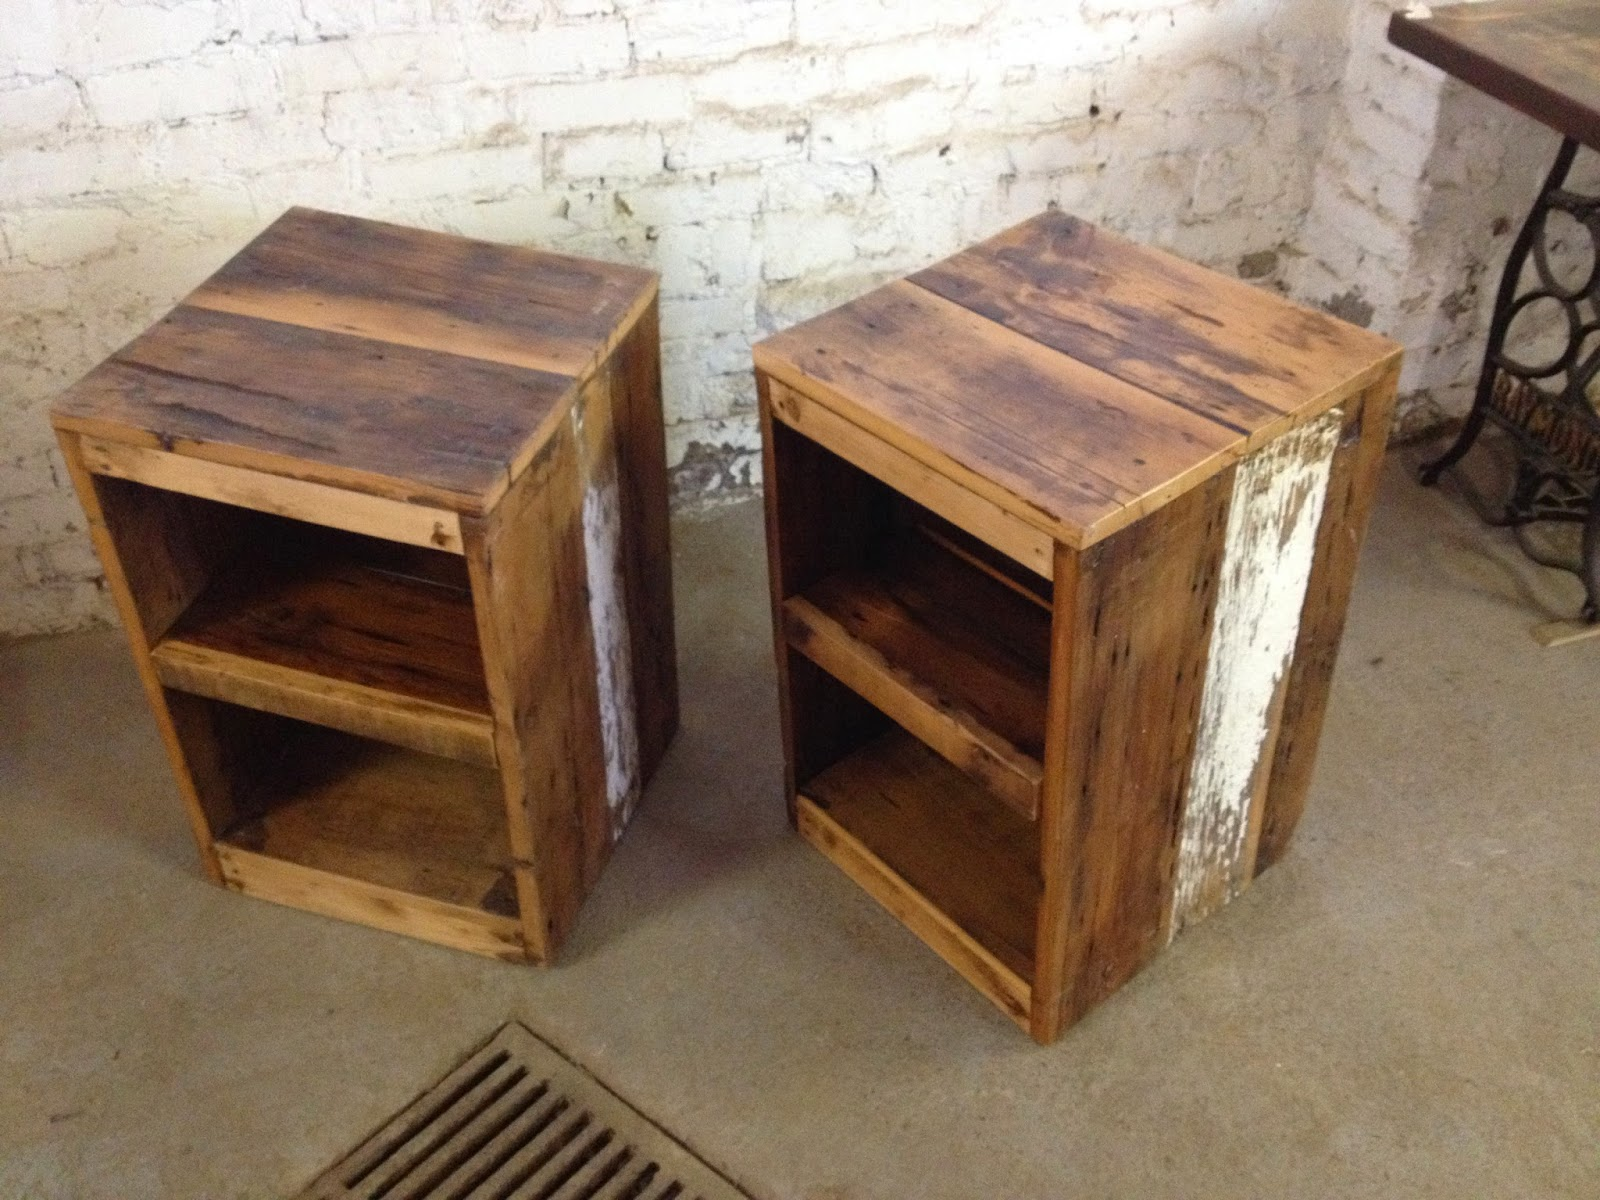 forever interiors barn board side table With barn board end tables